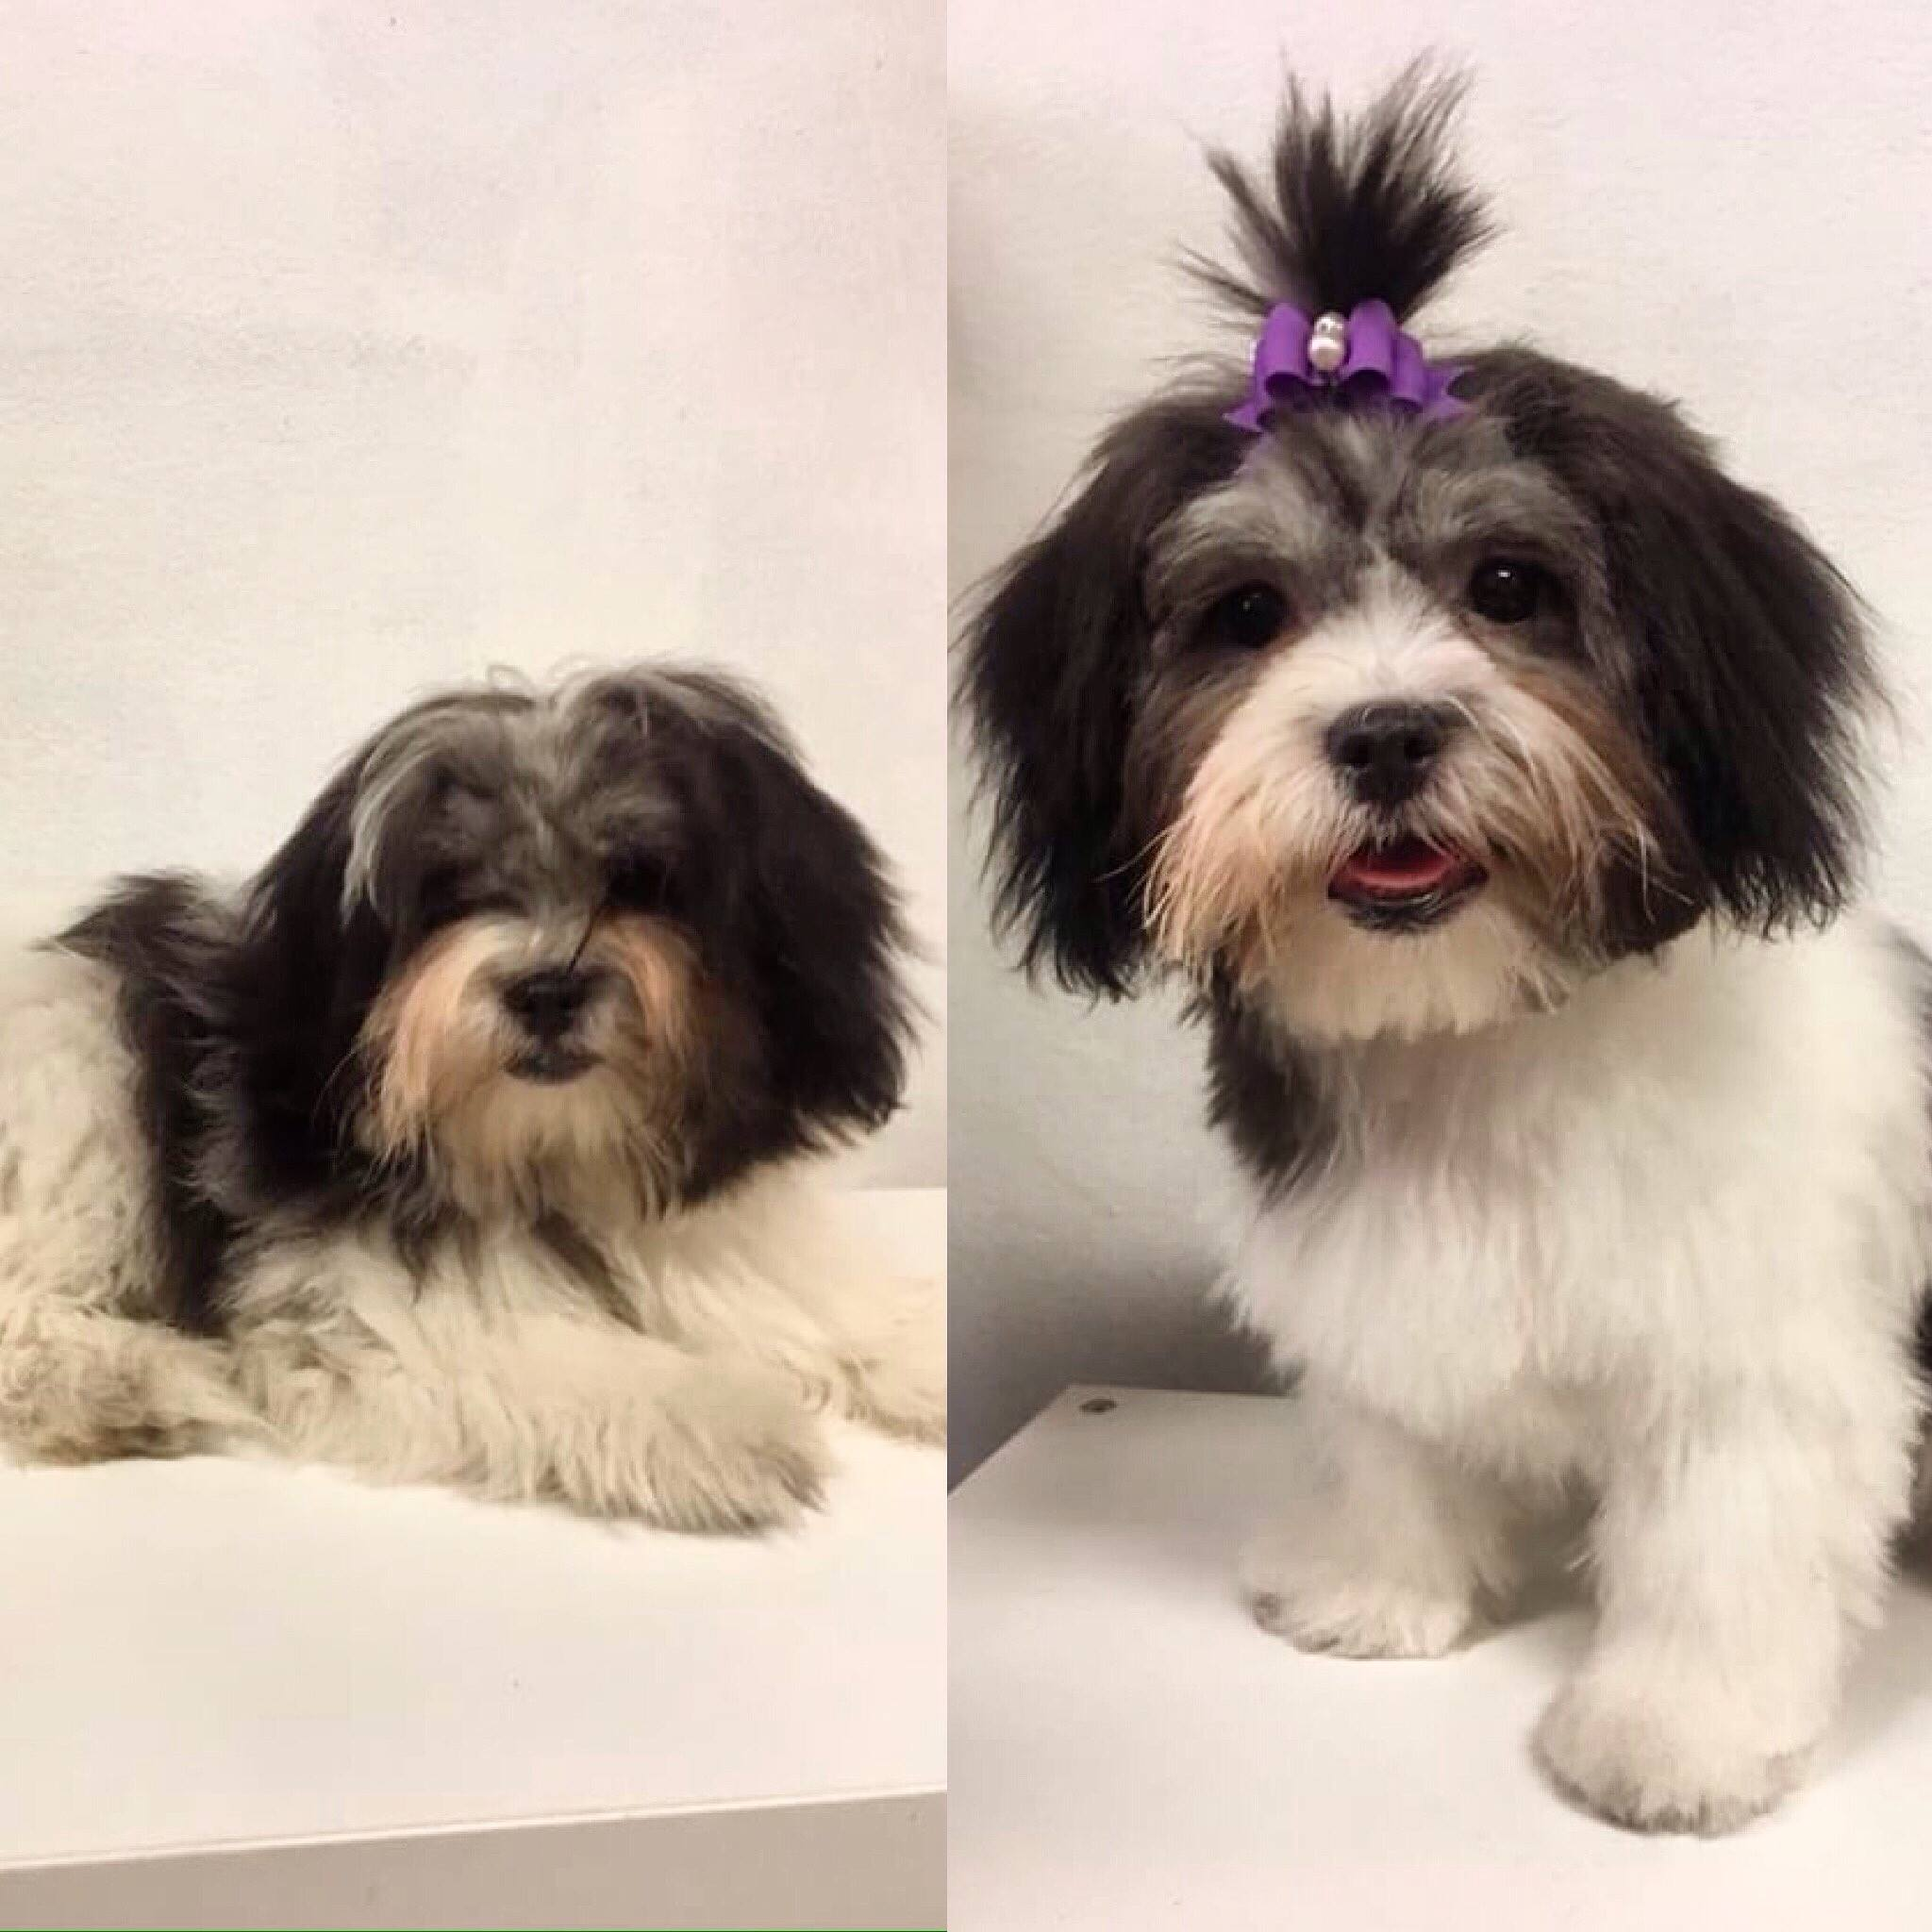 Roxy - Before and after